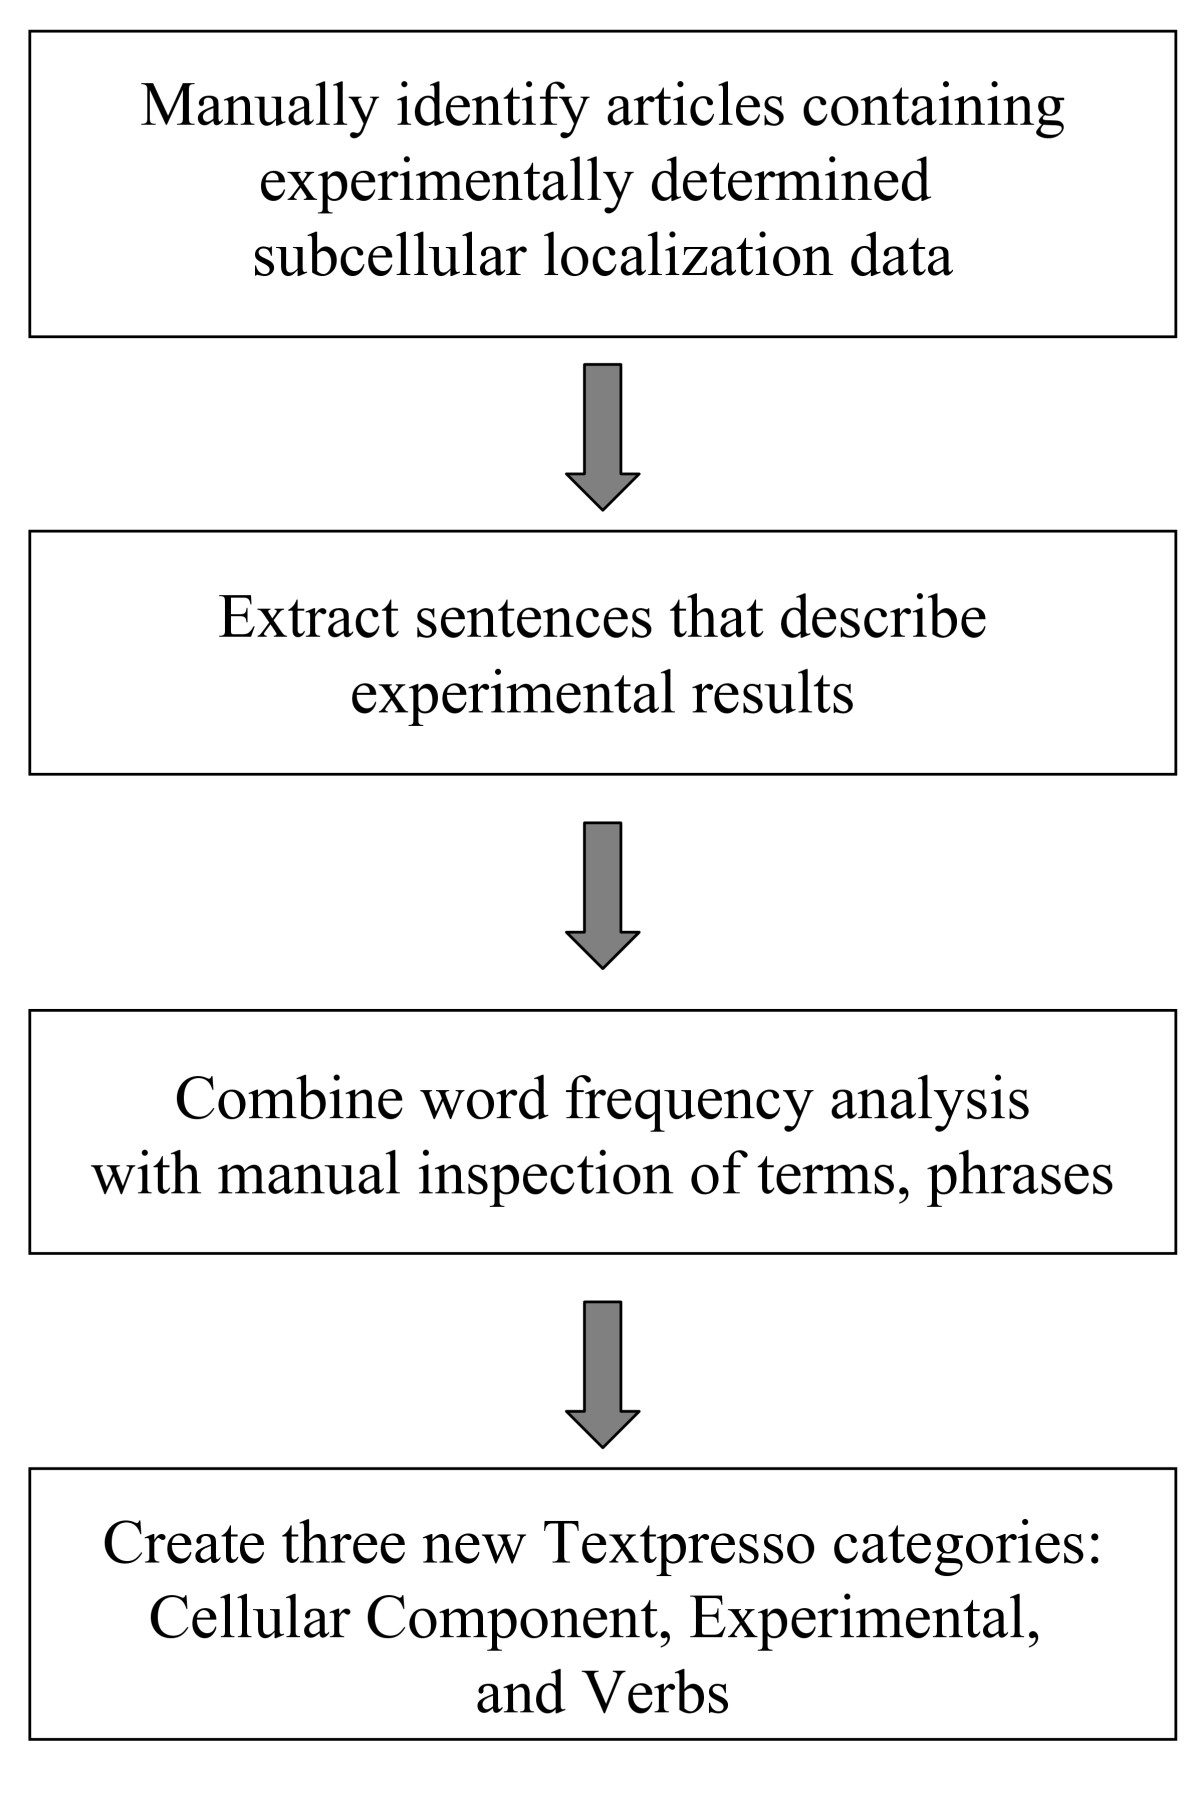 http://static-content.springer.com/image/art%3A10.1186%2F1471-2105-10-228/MediaObjects/12859_2009_Article_2958_Fig1_HTML.jpg